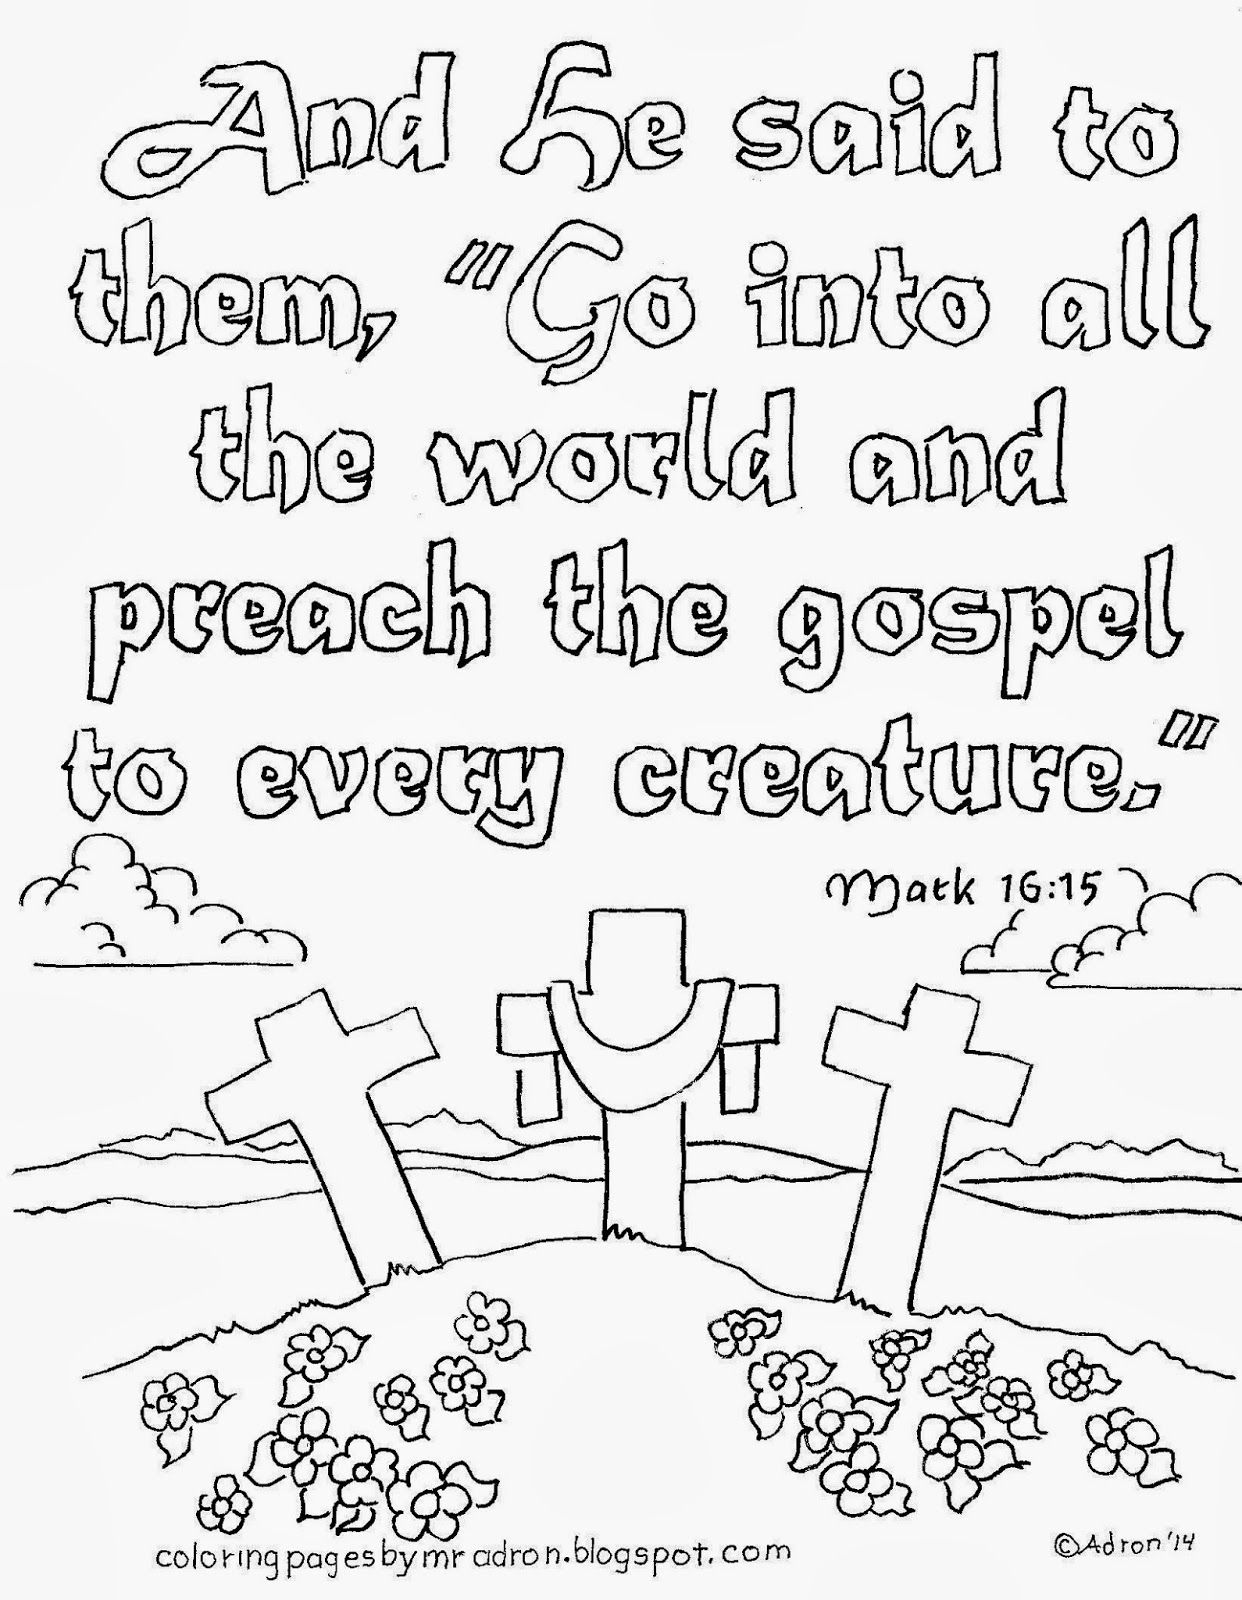 Coloring Pages For Kids By Mr Adron Go Preach The Gospel Free Page Ma